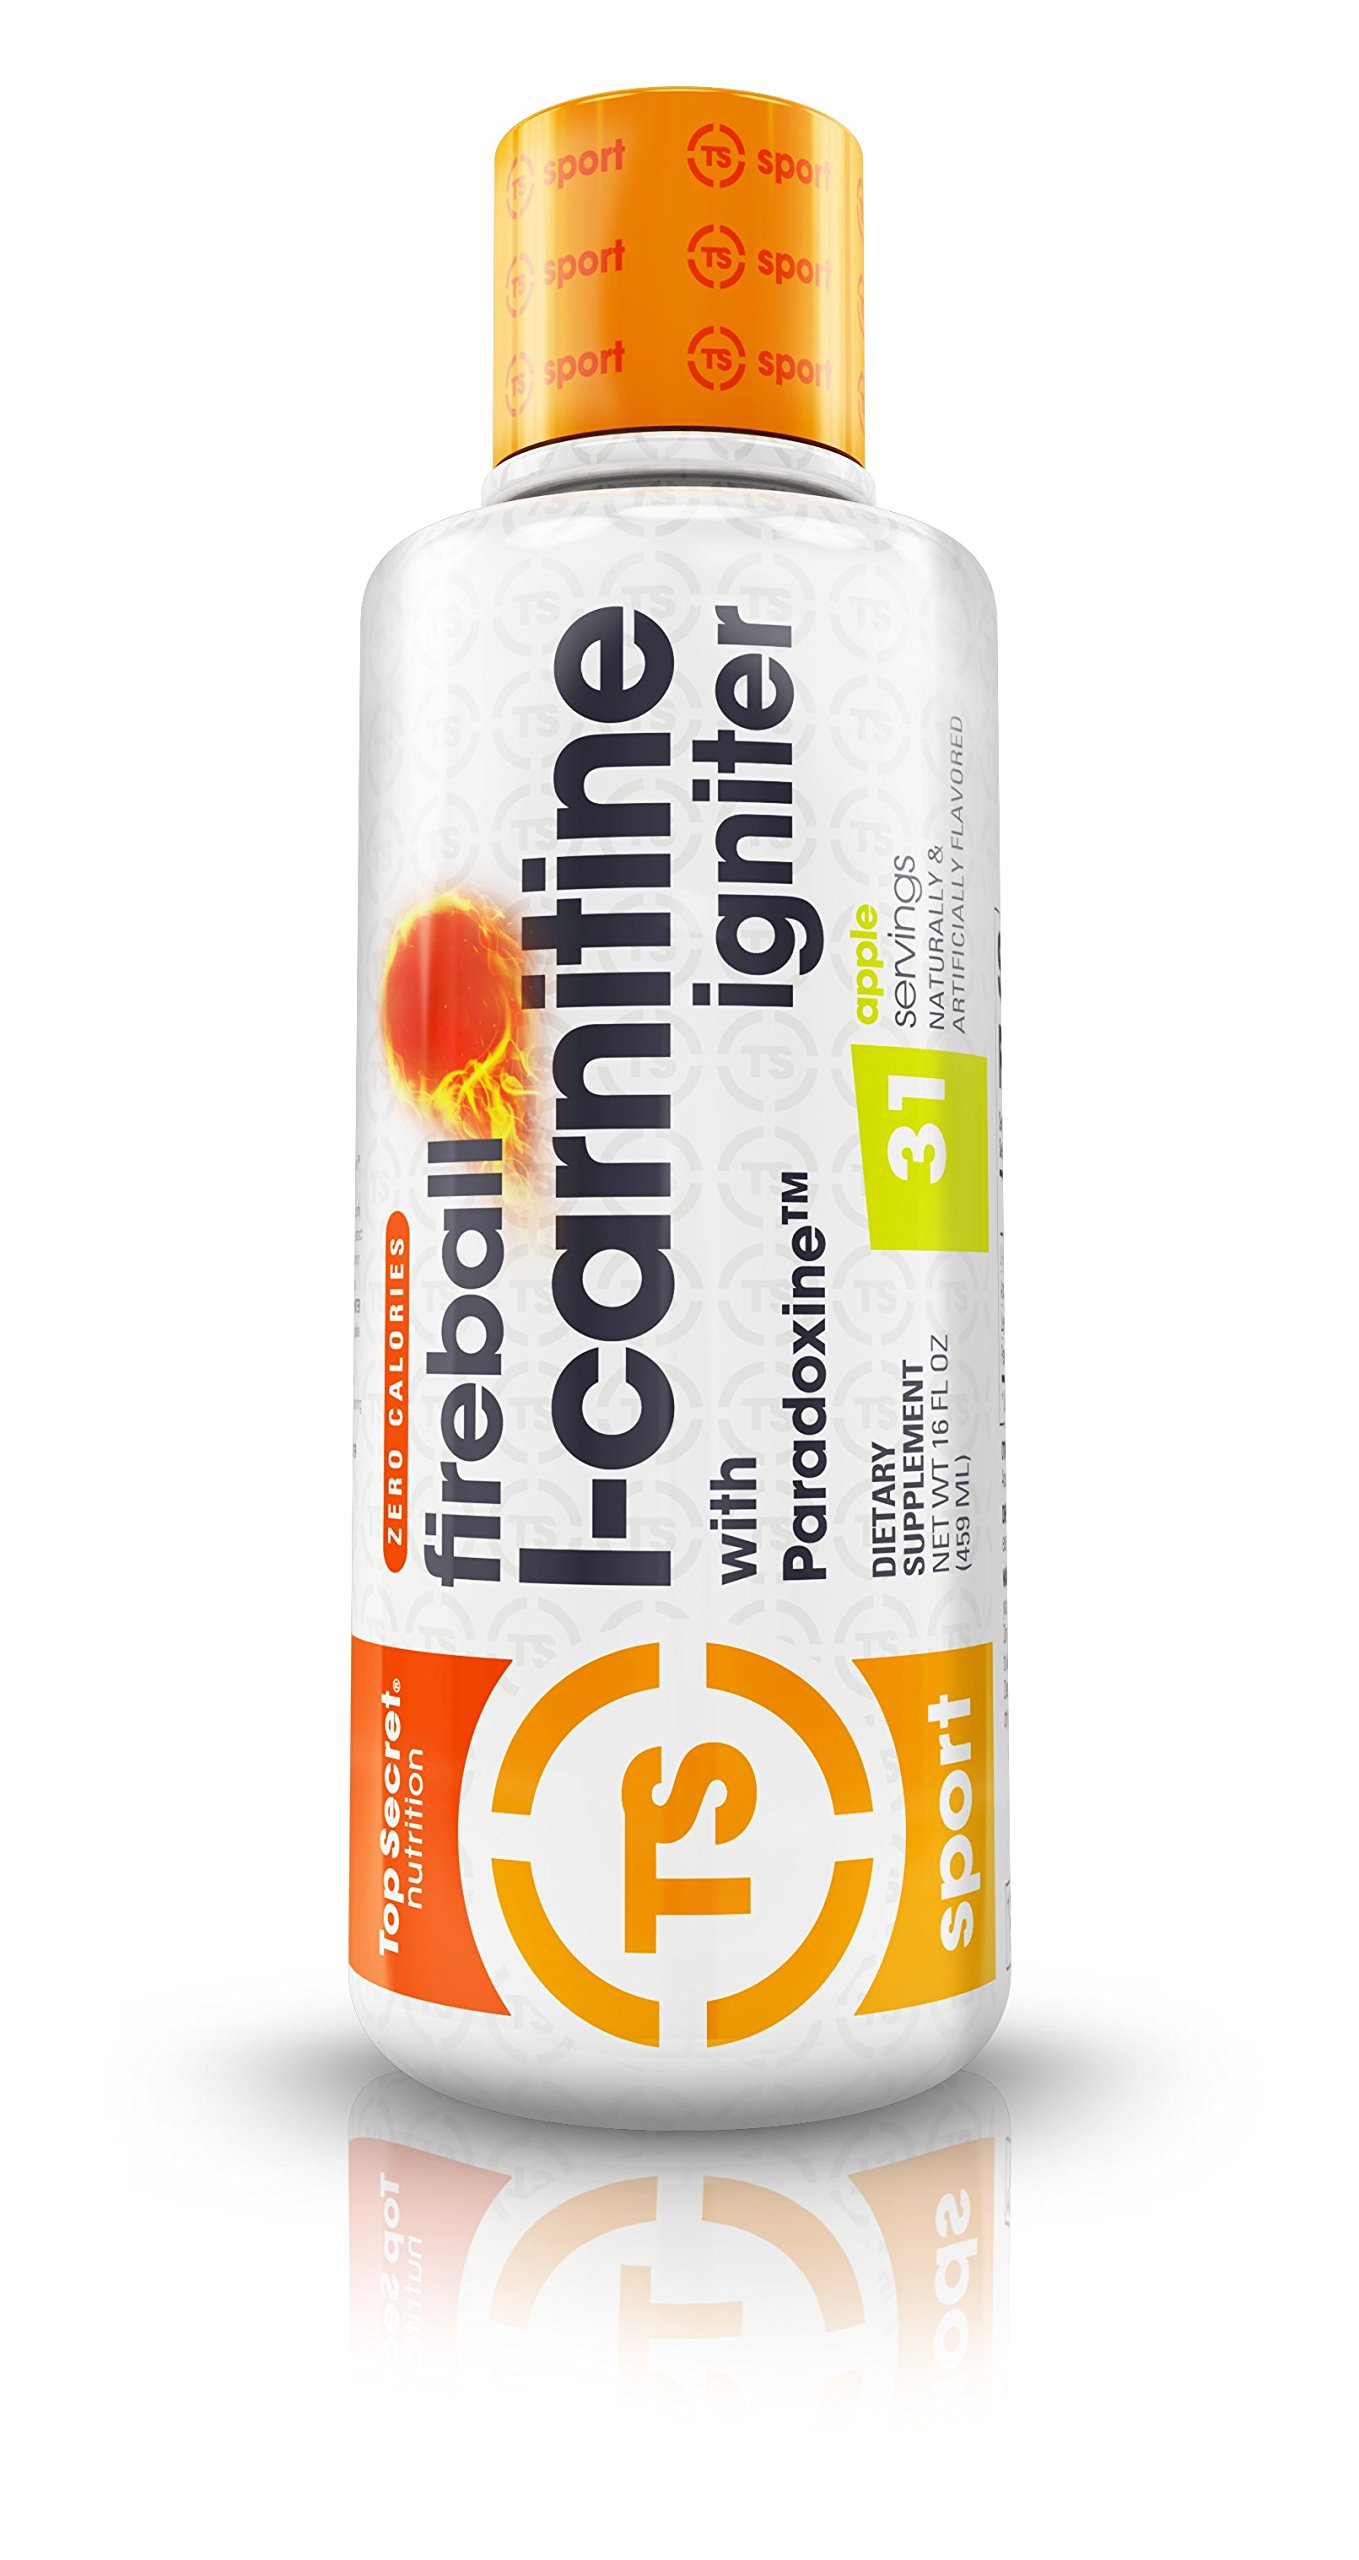 Top Secret Nutrition Fireball L-Carnitine Liquid Fat Burning Weight Loss Supplement with Paradoxine (16 oz) Apple